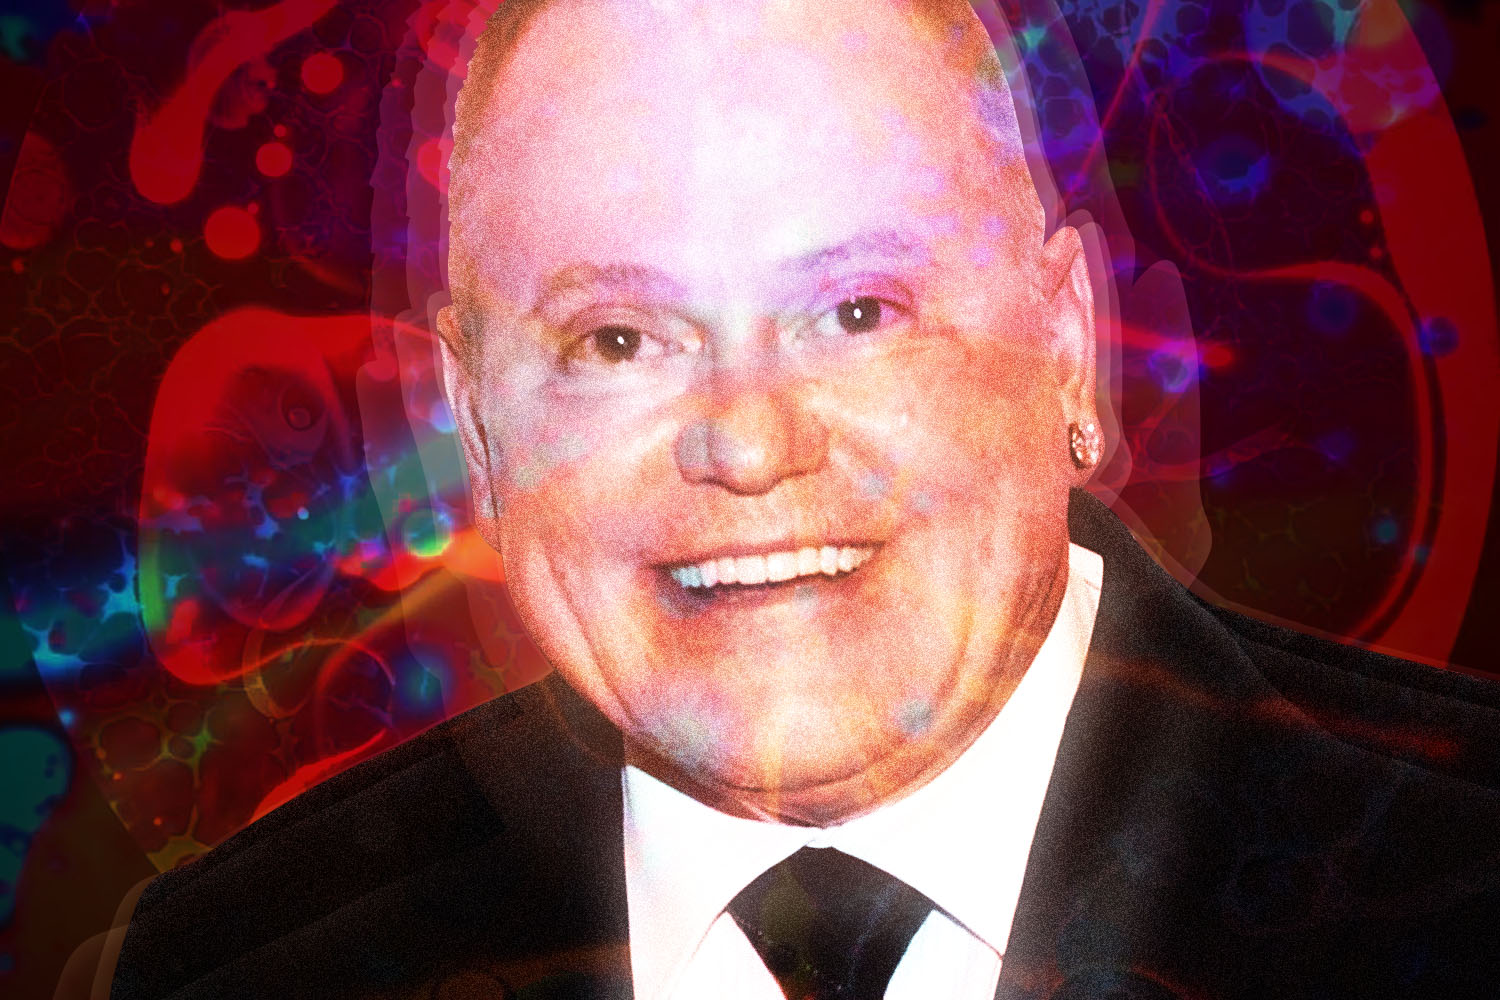 Talking Golf and LSD With GoDaddy Founder Bob Parsons